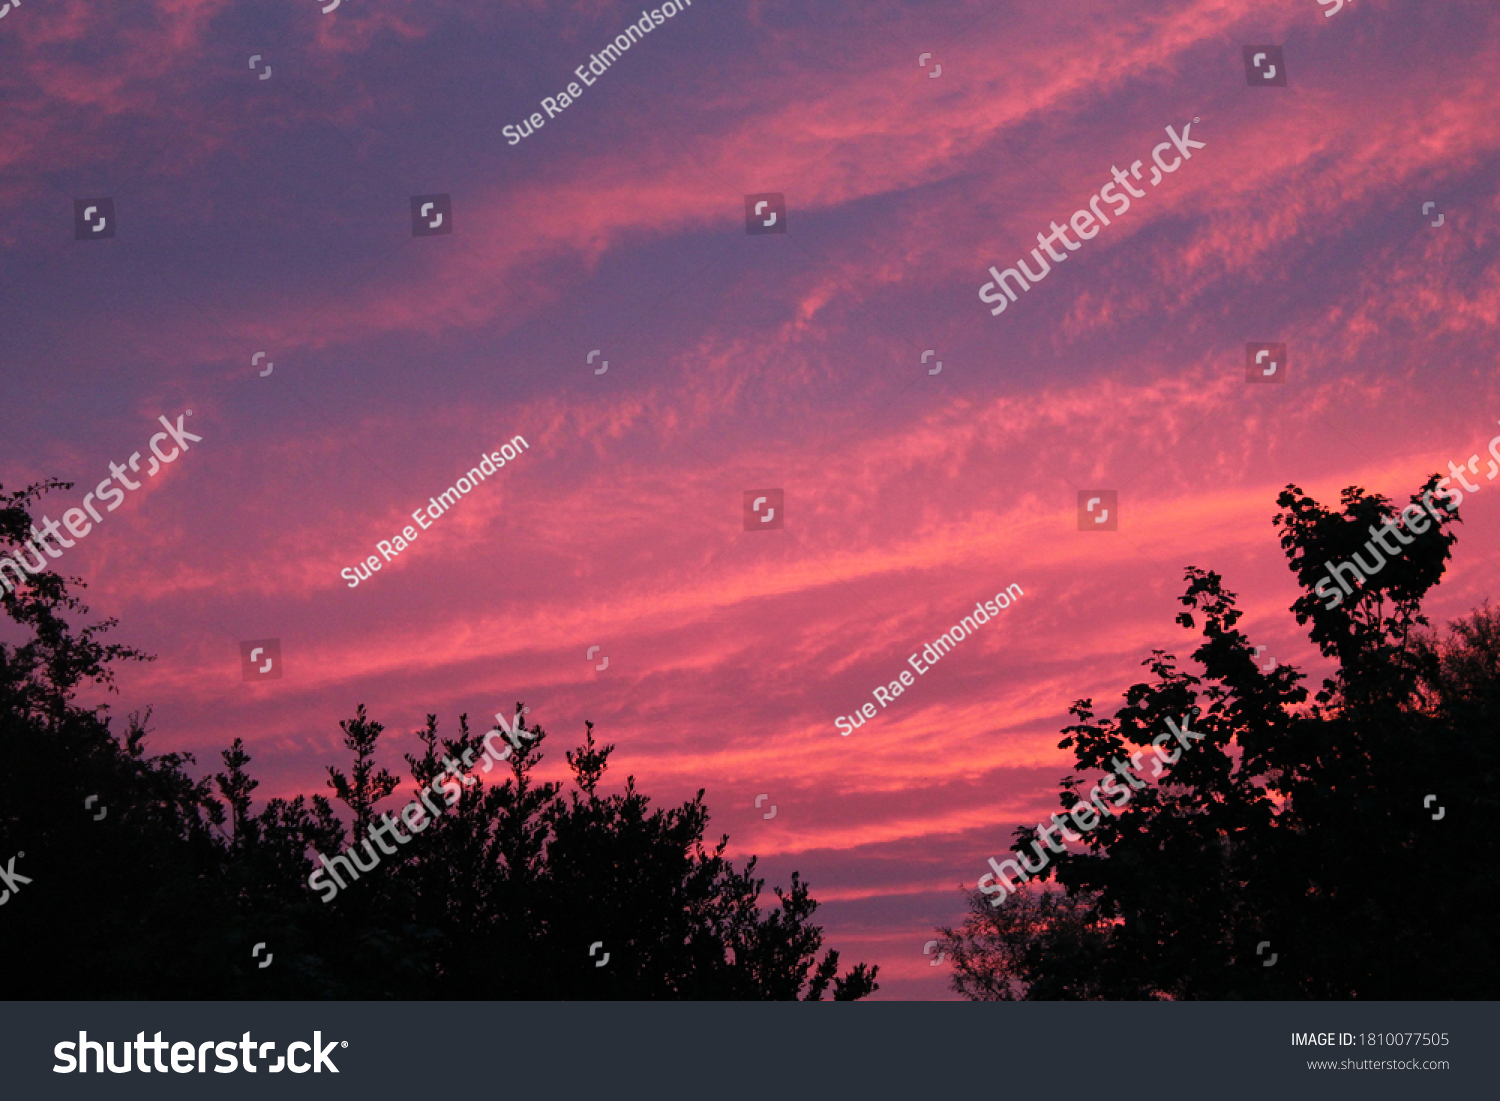 vivid sky in pink, blue and purple colours with silhouette tree tops